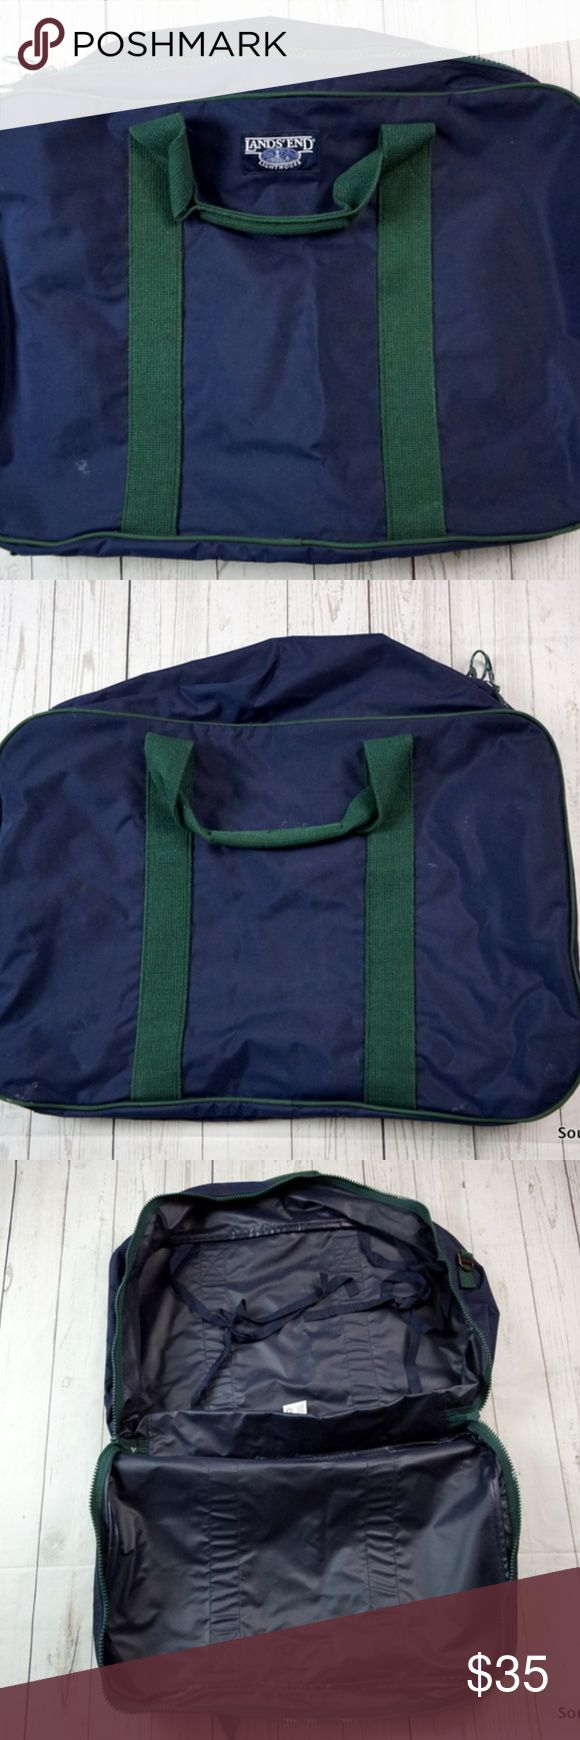 "Vintage Lands End Lighthouse Large Nylon Bag Vintage Lands End Lighthouse Bag, 24 x 17 x 7, Vintage Bag, Luggage, Large Bag, Large Nylon Bag, Quality Made, Made in the USA  Brand: Lands End Material: Nylon  Detailed Measurements:    24"" x 17"" x 7"" Lands' End Bags Luggage & Travel Bags"